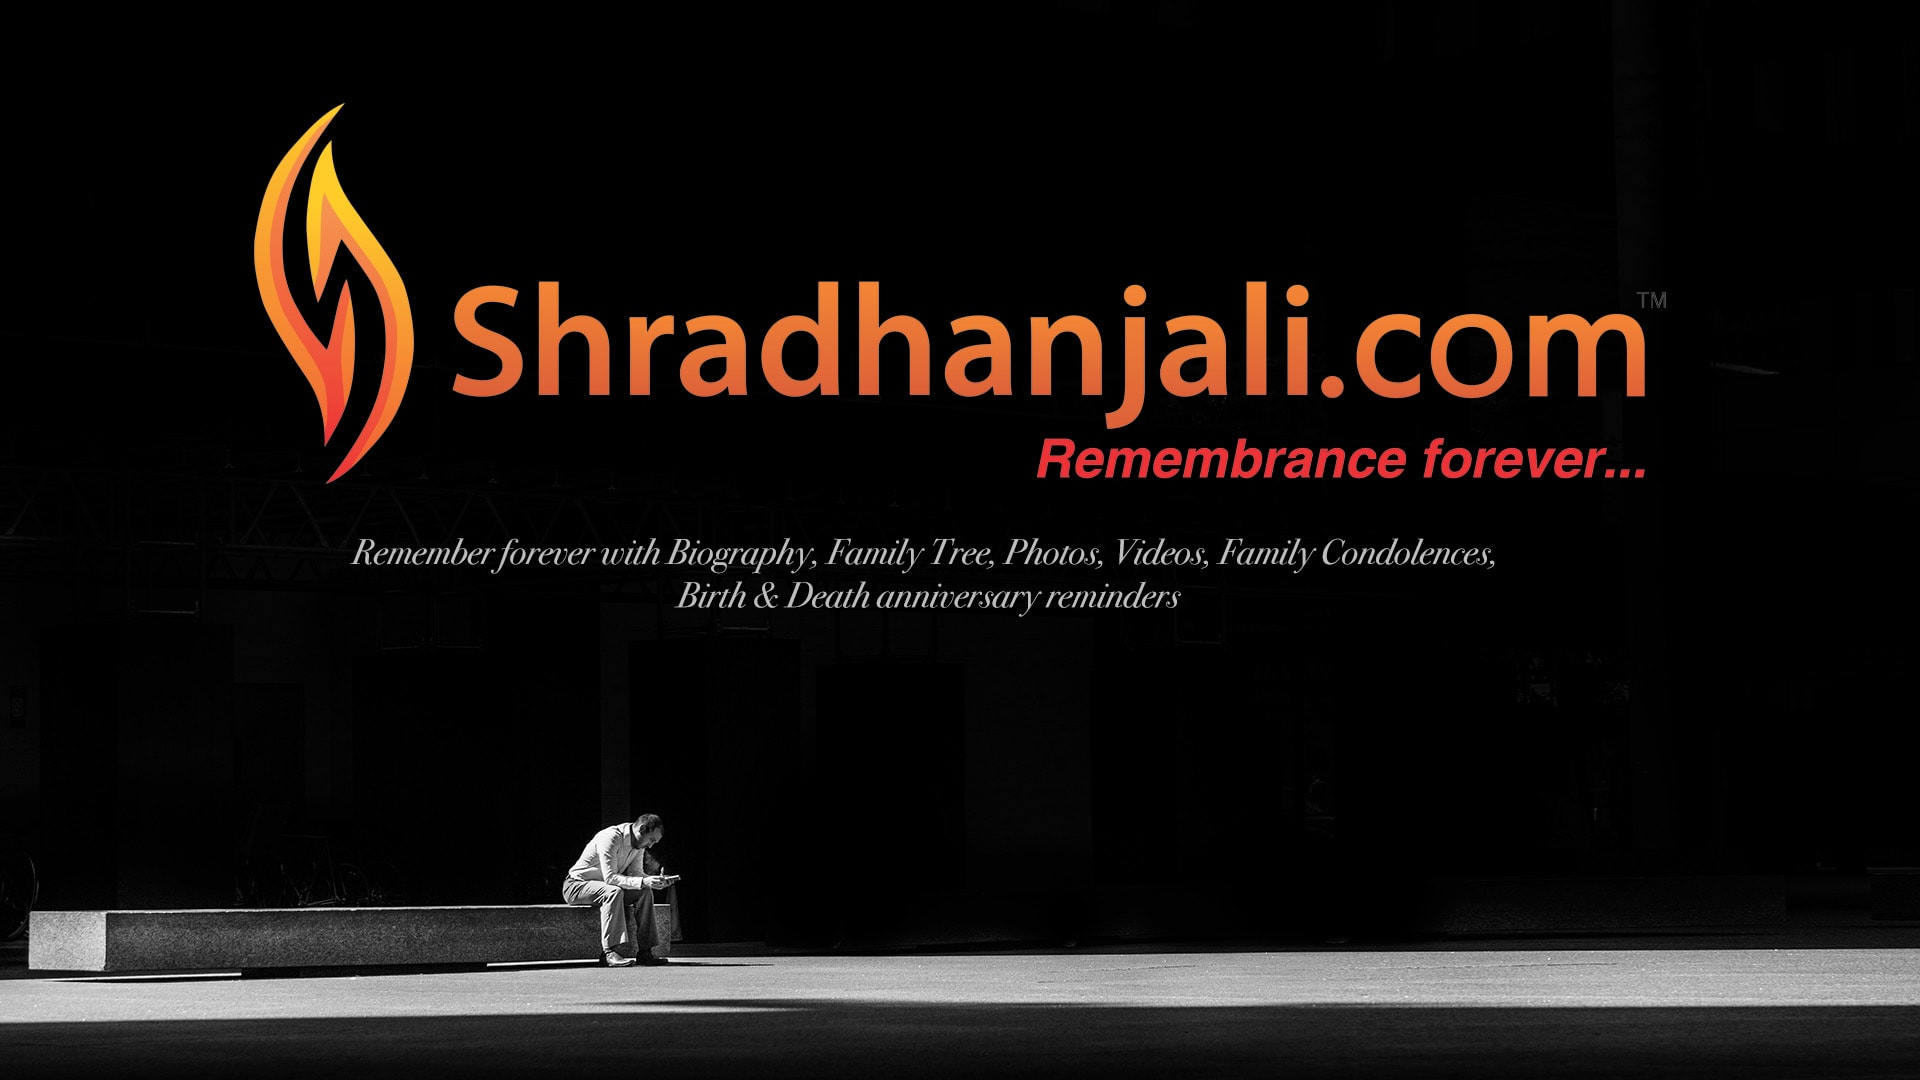 Shradhanjali.Com - India's First and Only Memorial Portal